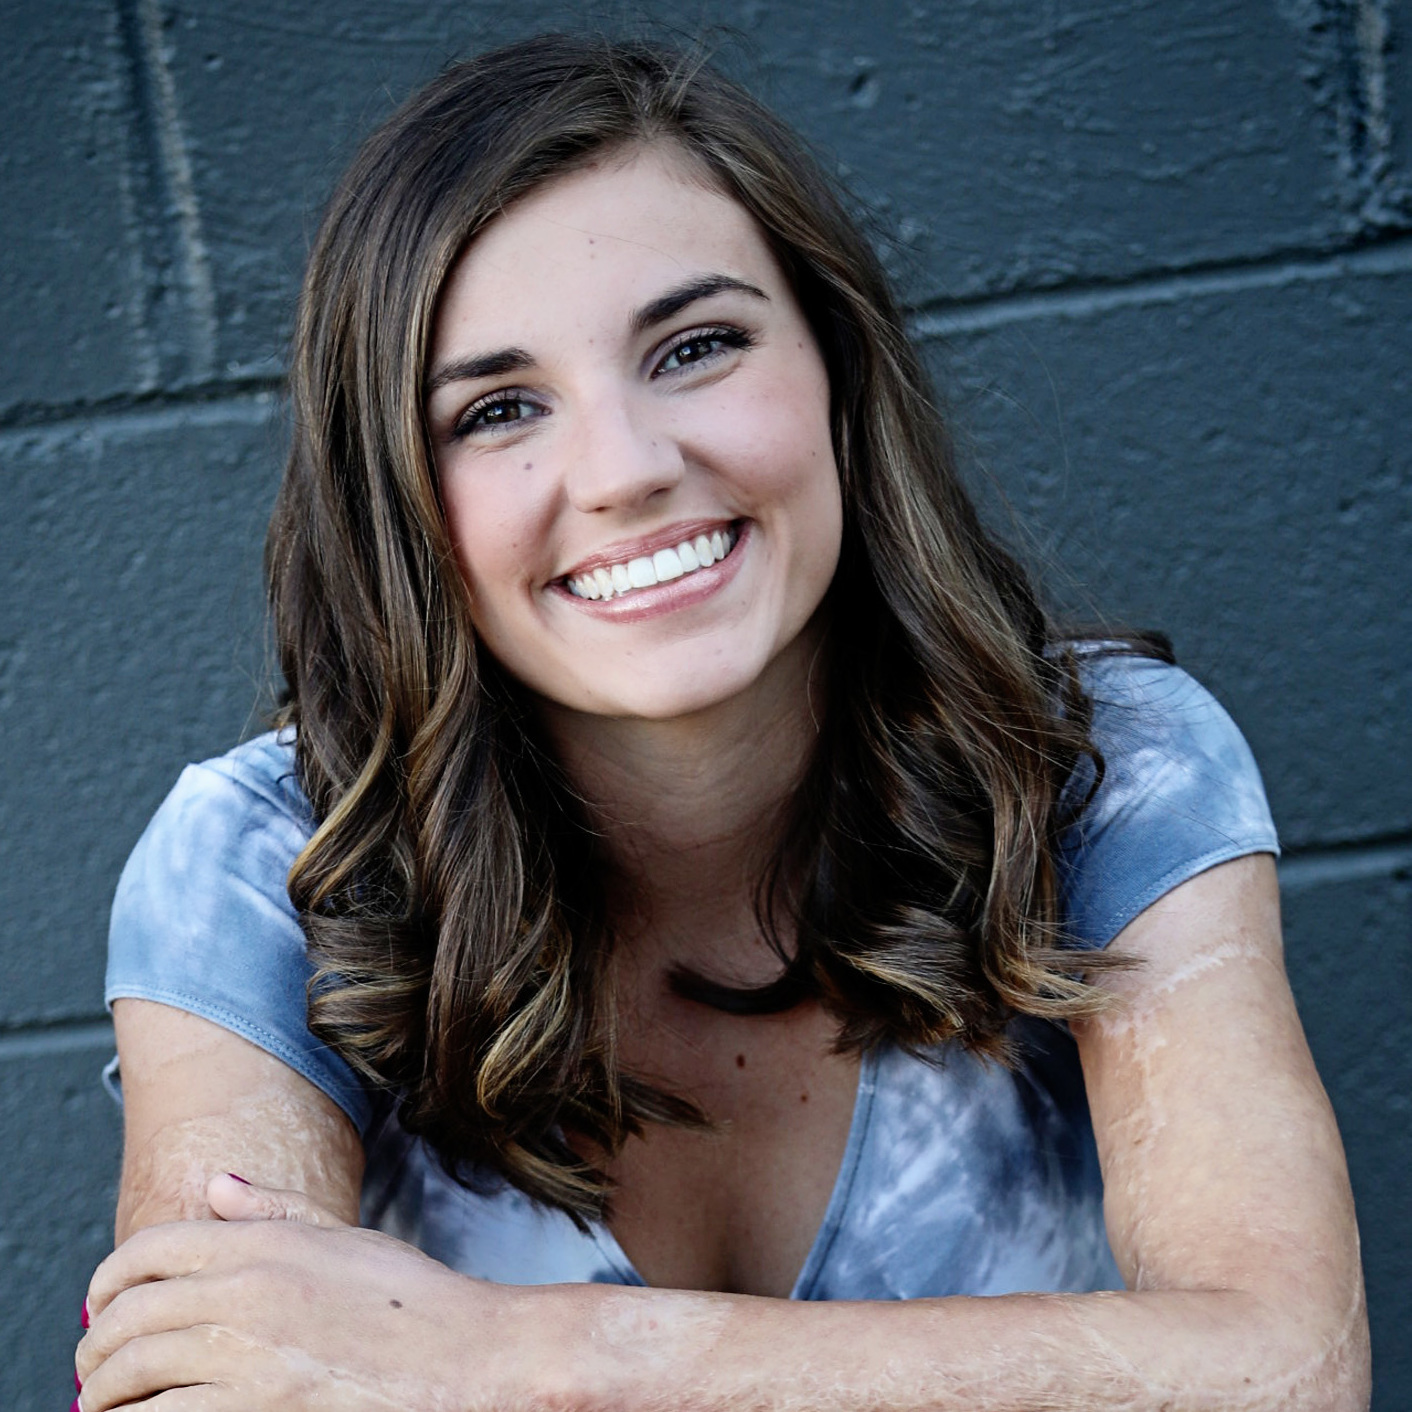 Kilee sitting against wall, with arms around legs